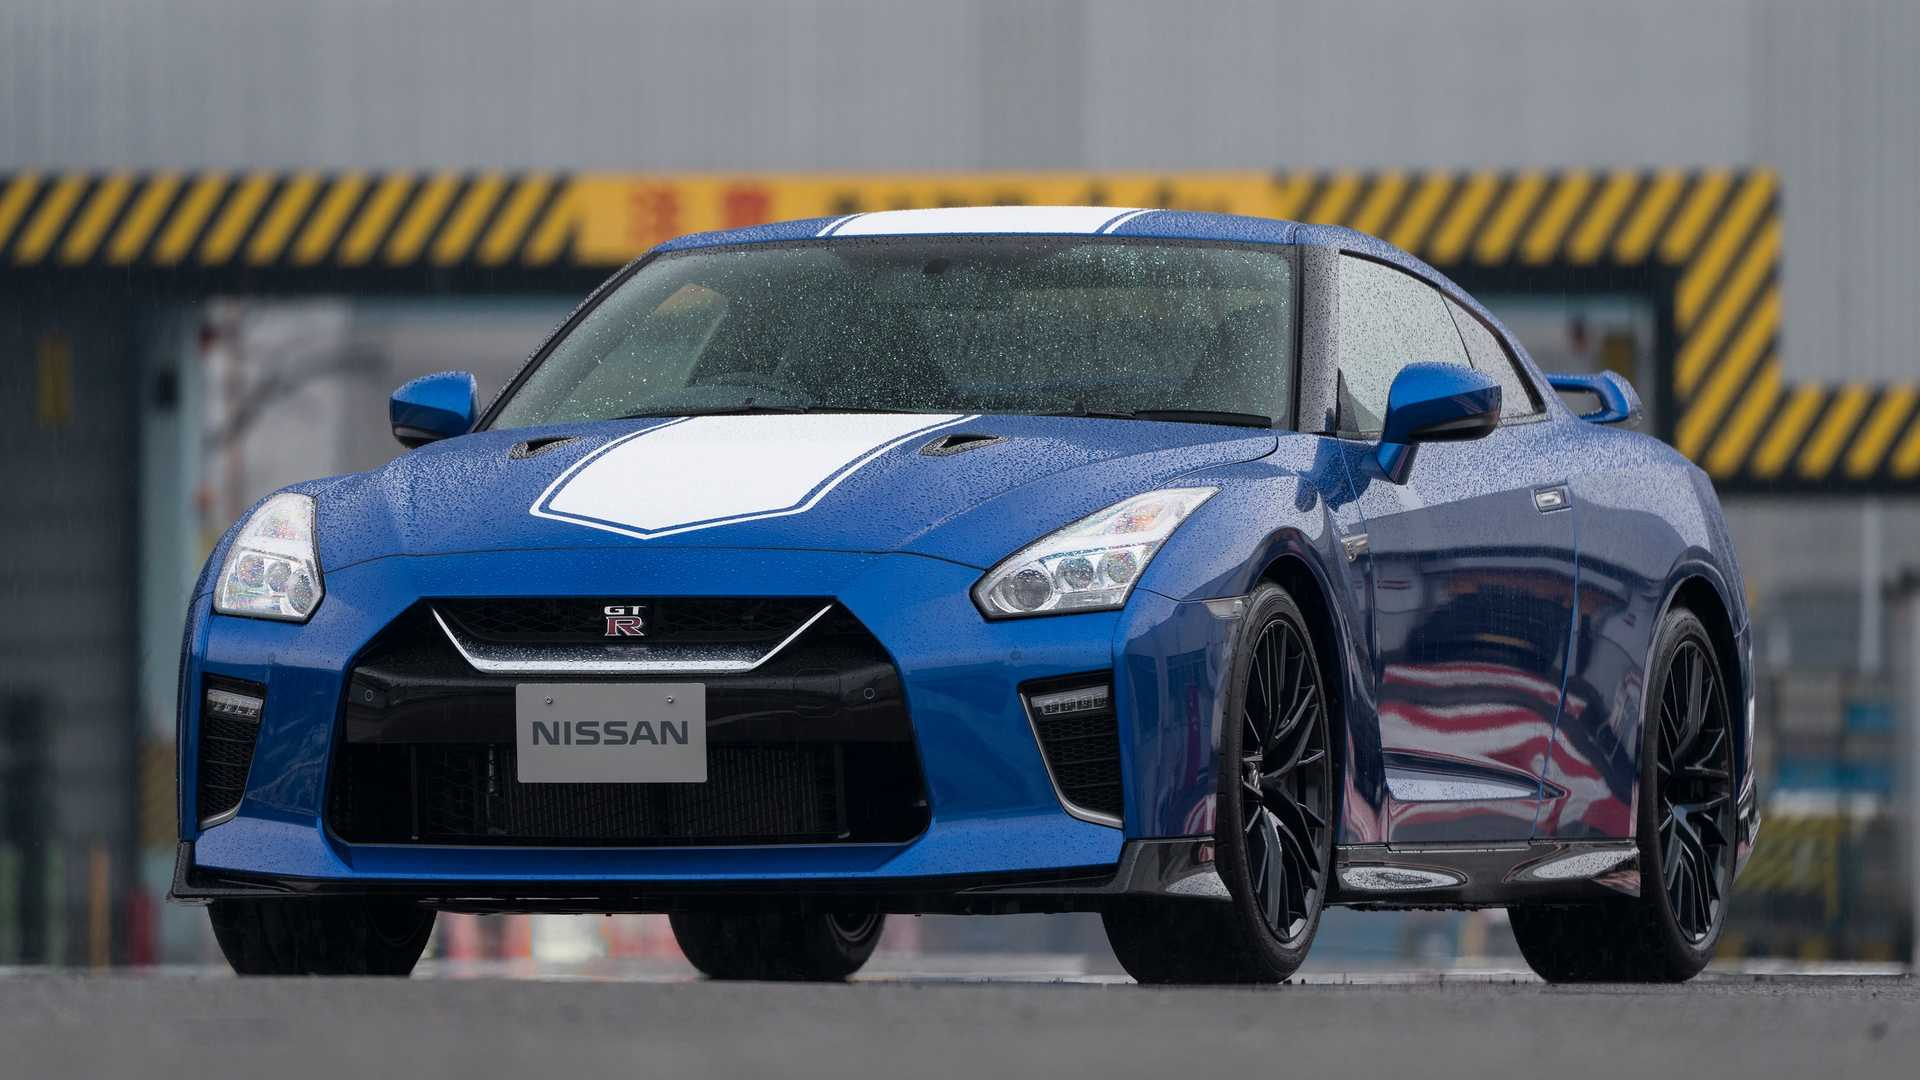 How Much Horsepower Does A Gtr Have >> 2020 Nissan Gt R Starts At 112 235 Tops Out At 212 435